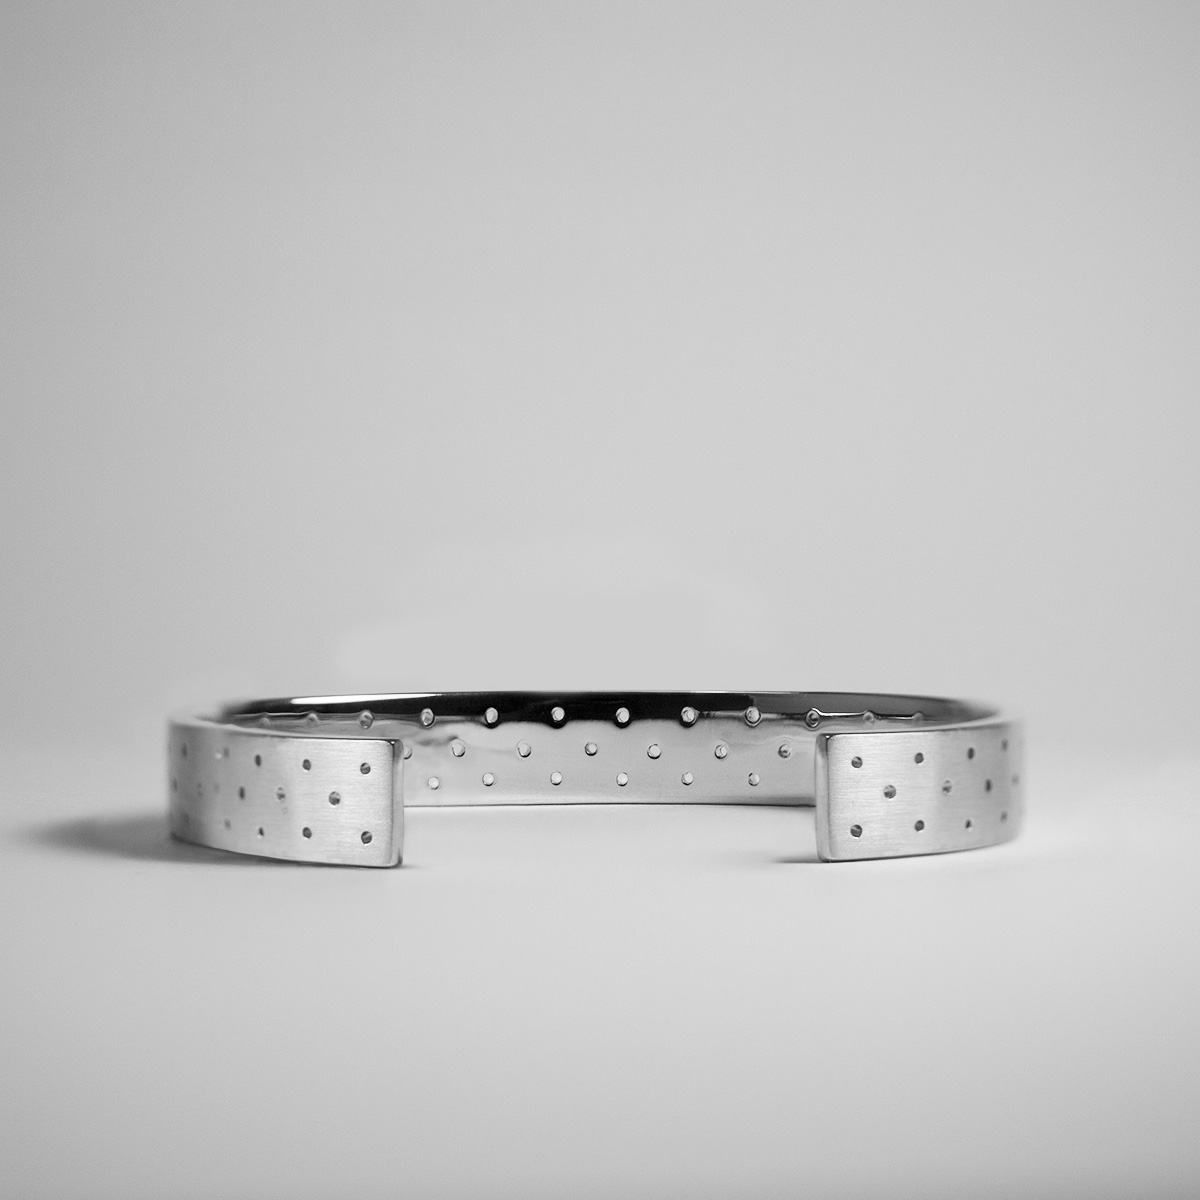 PERFORATED_10MM_SIDE_SIVER copy alex orso.jpg